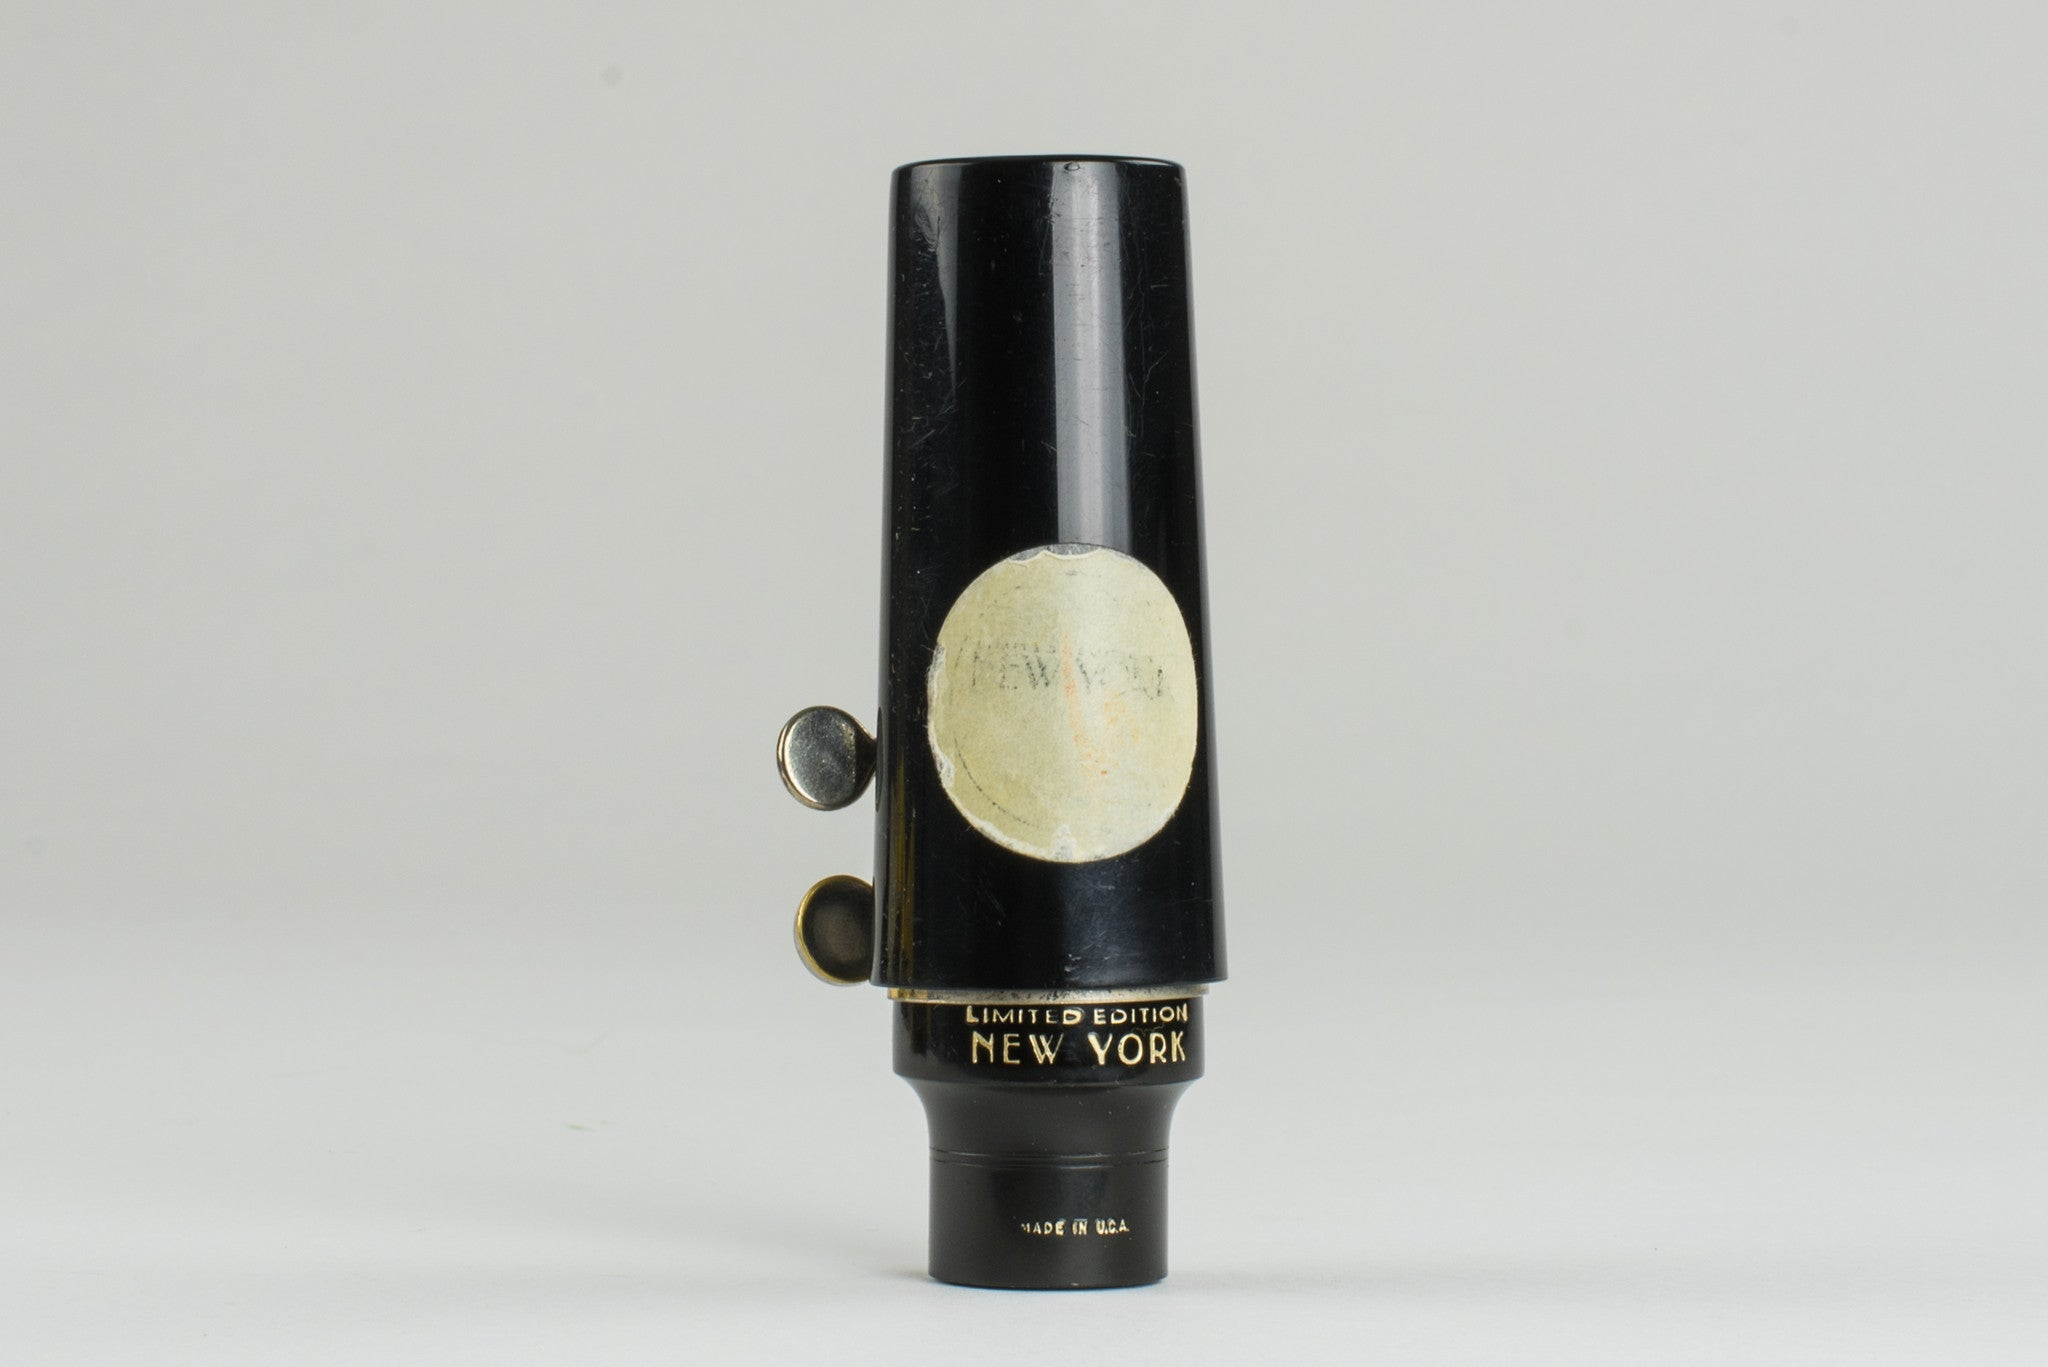 Meyer Limited Edition New York Alto Saxophone Mouthpiece 7M Near Mint!